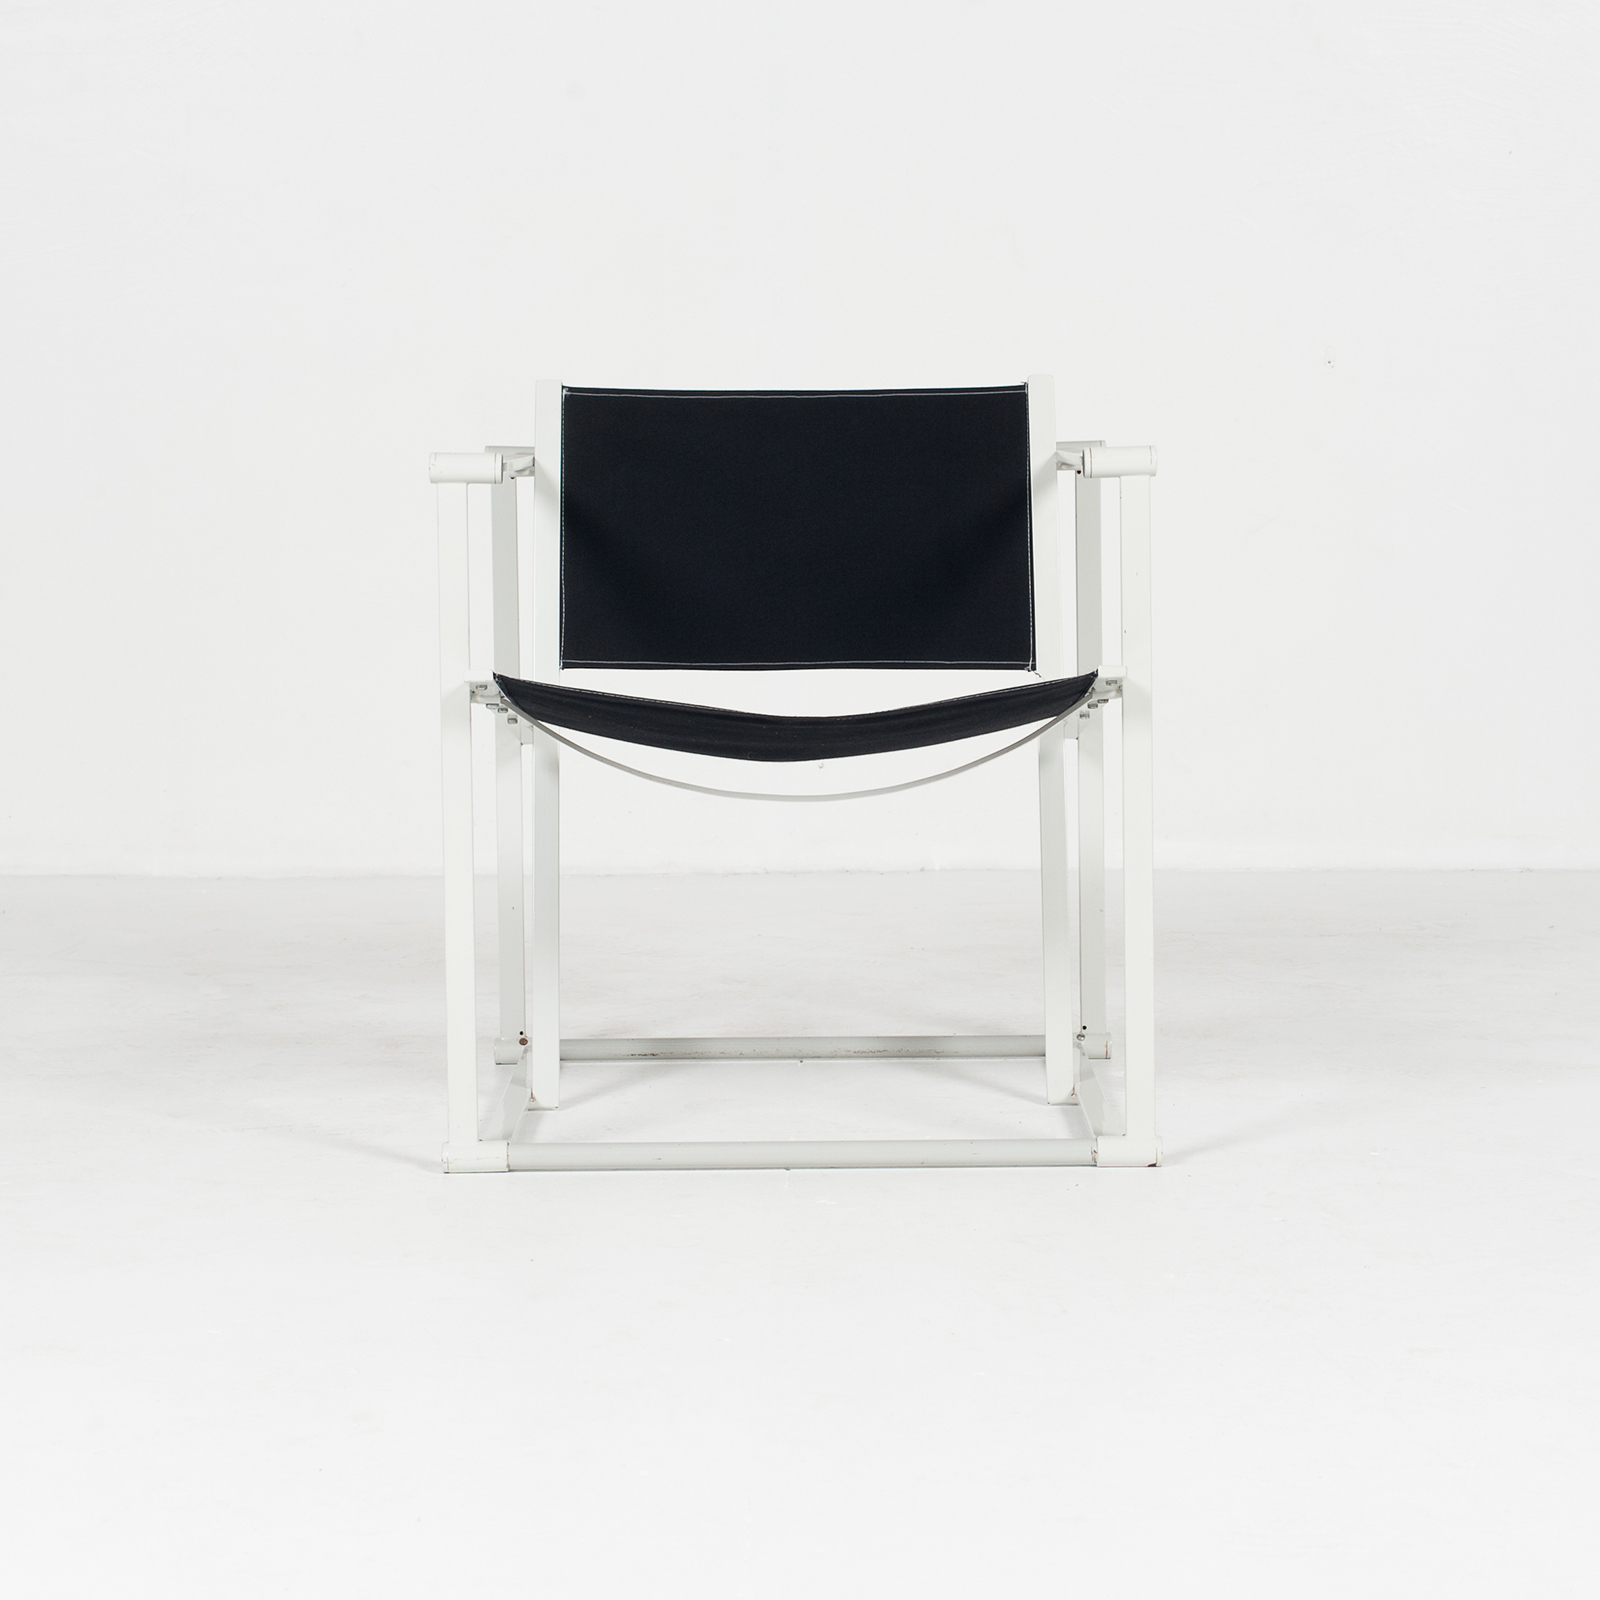 Model Fm60 Cubic Chair By Radboud Van Beekum For Pastoe In Black Canvas And Grey Frame, 1980s, The Netherlands32